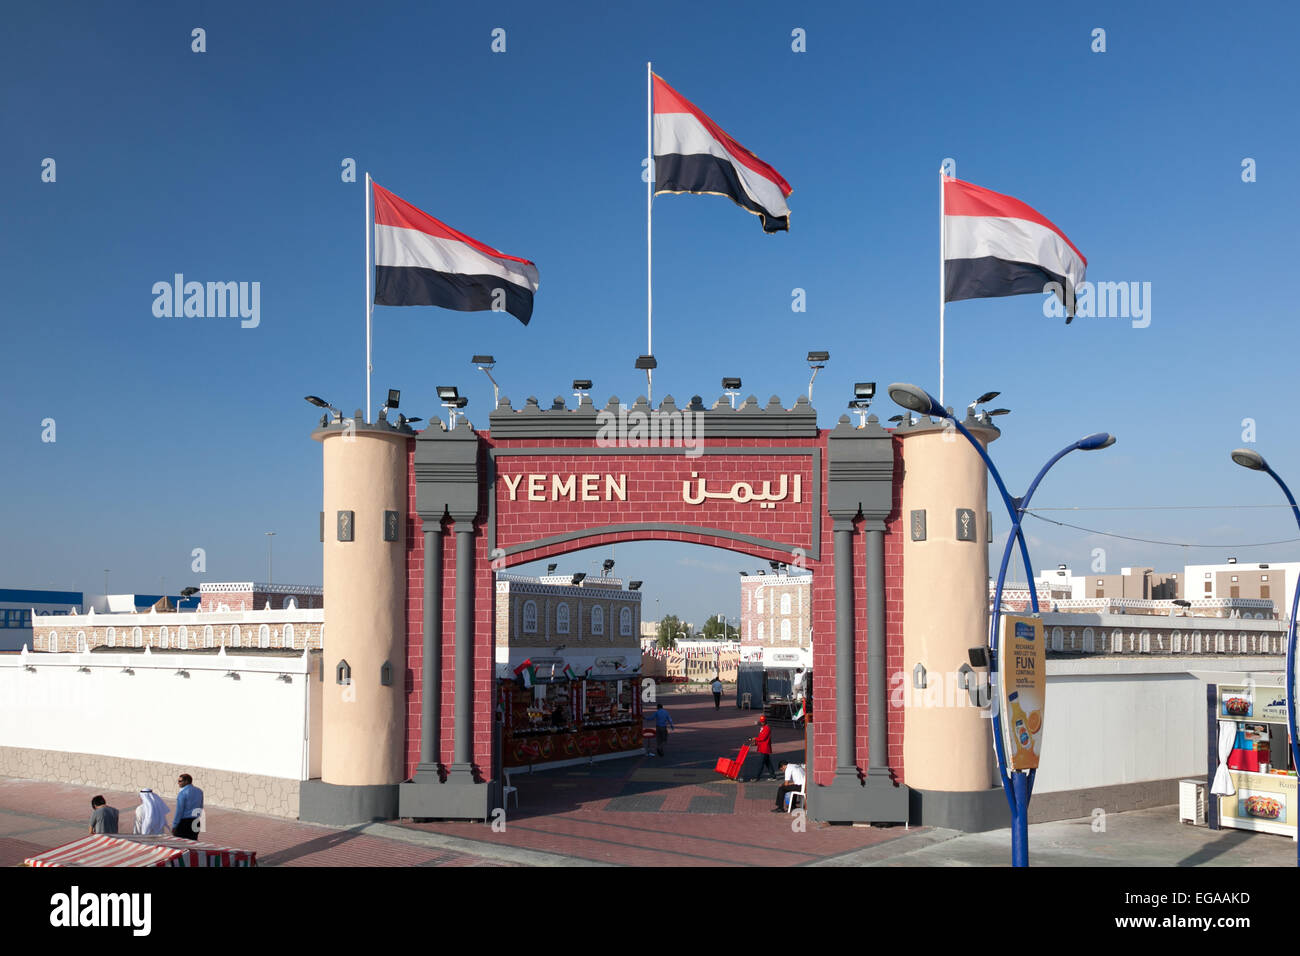 Yemen Pavilion at the Global Village in Dubai - Stock Image